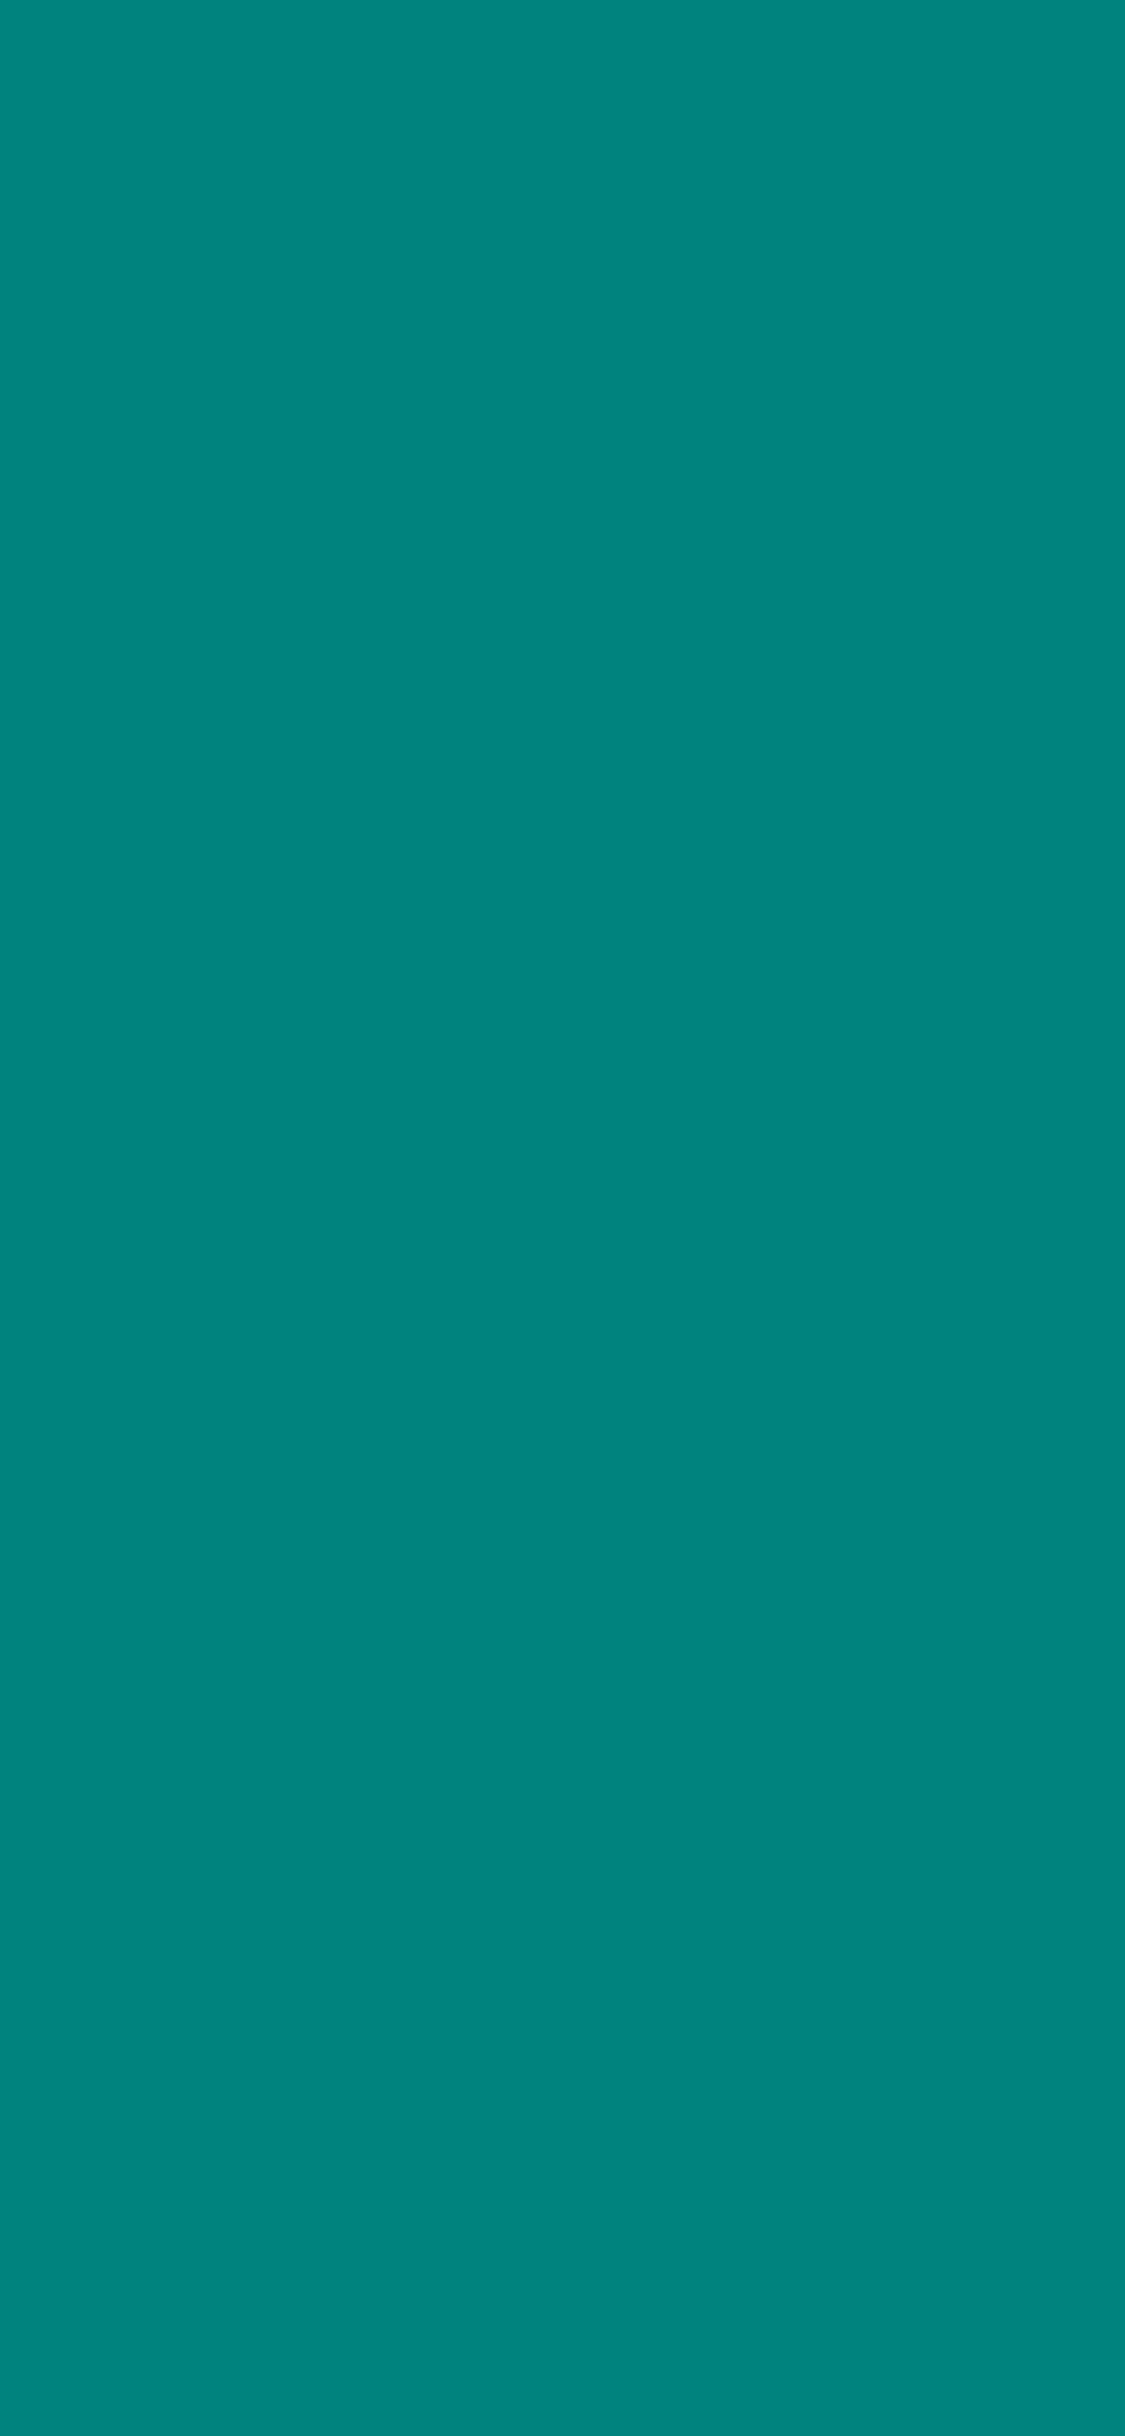 1125x2436 Teal Green Solid Color Background